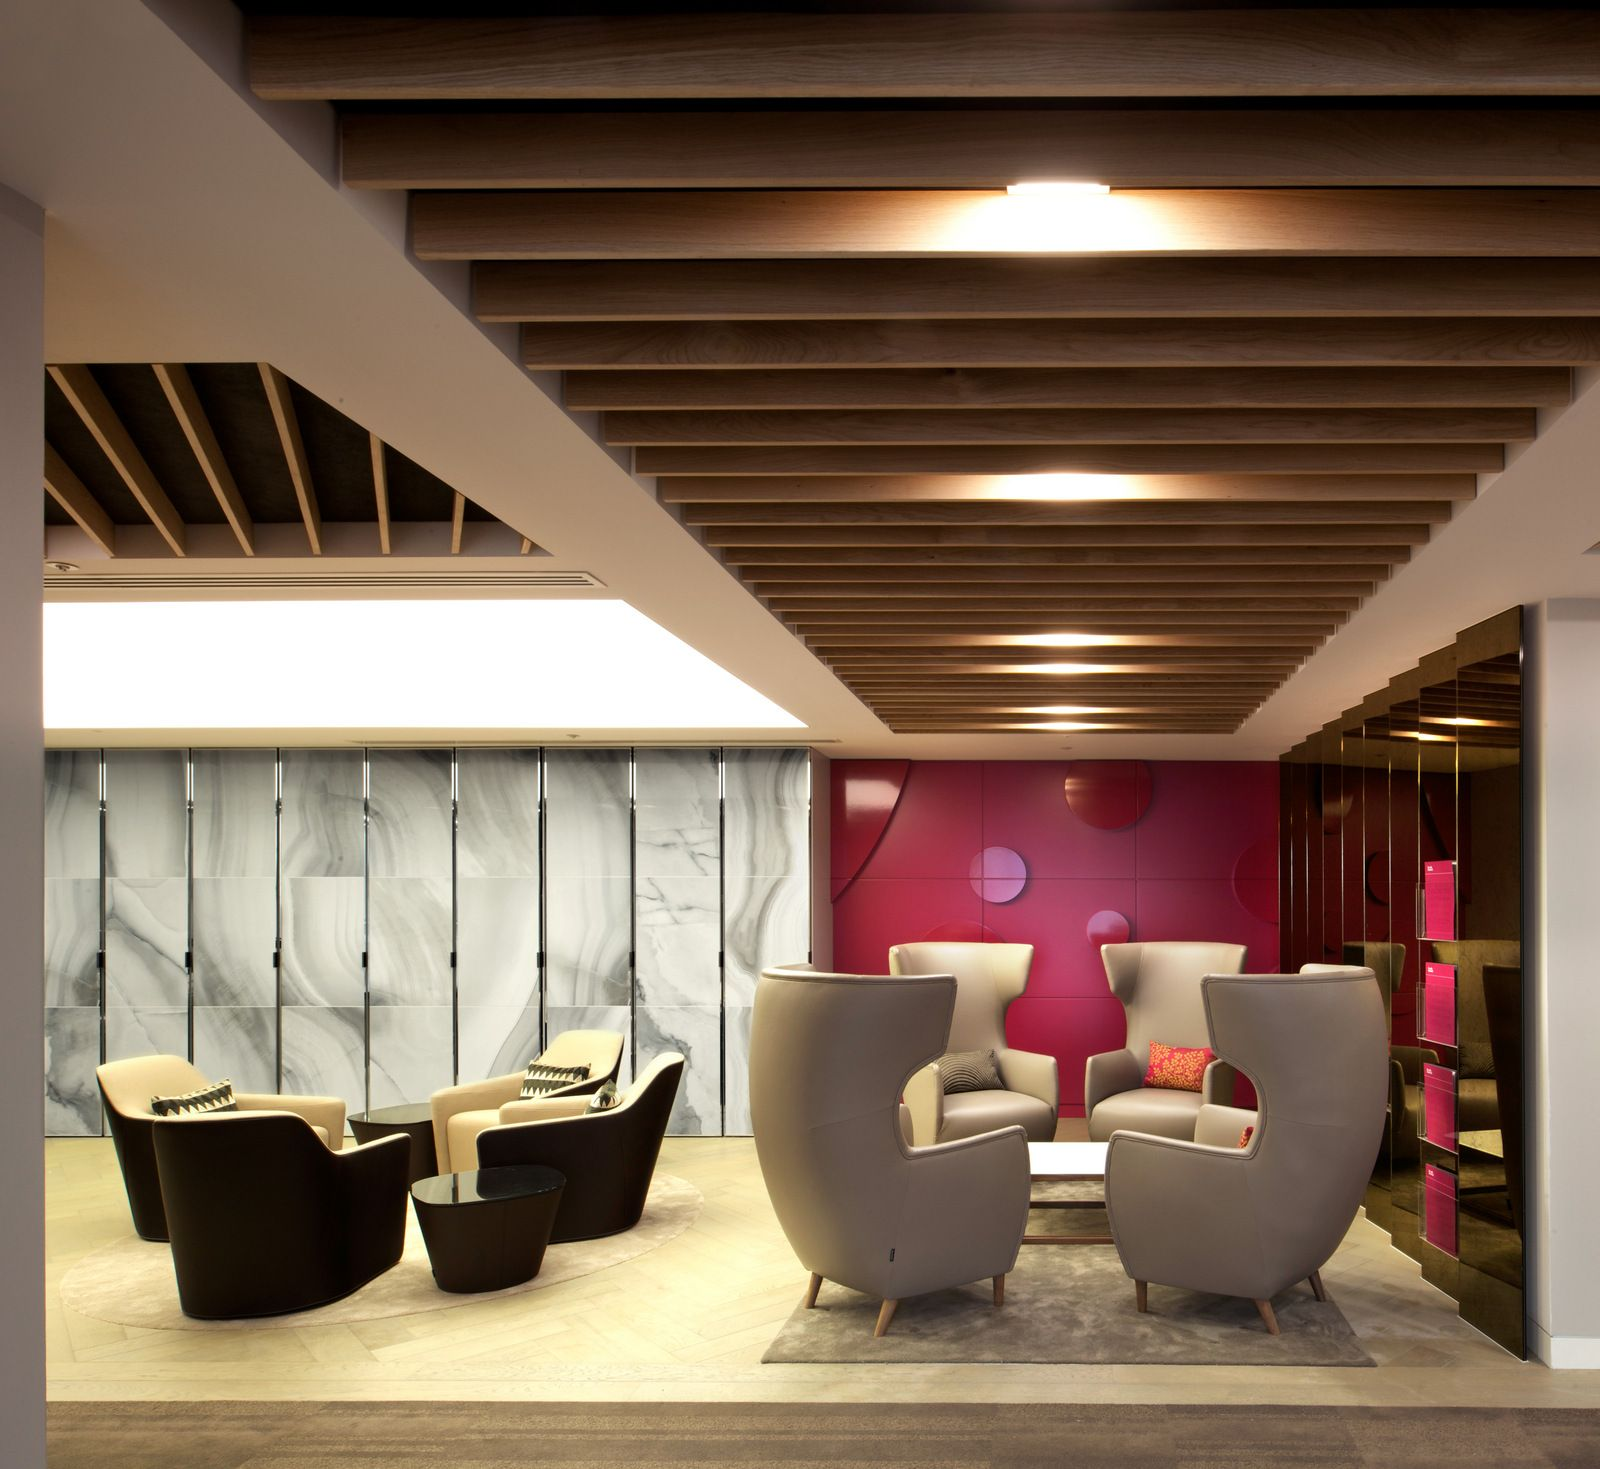 Interior design jobs london england a look inside pink squid s london office design firms for Interior design jobs london england